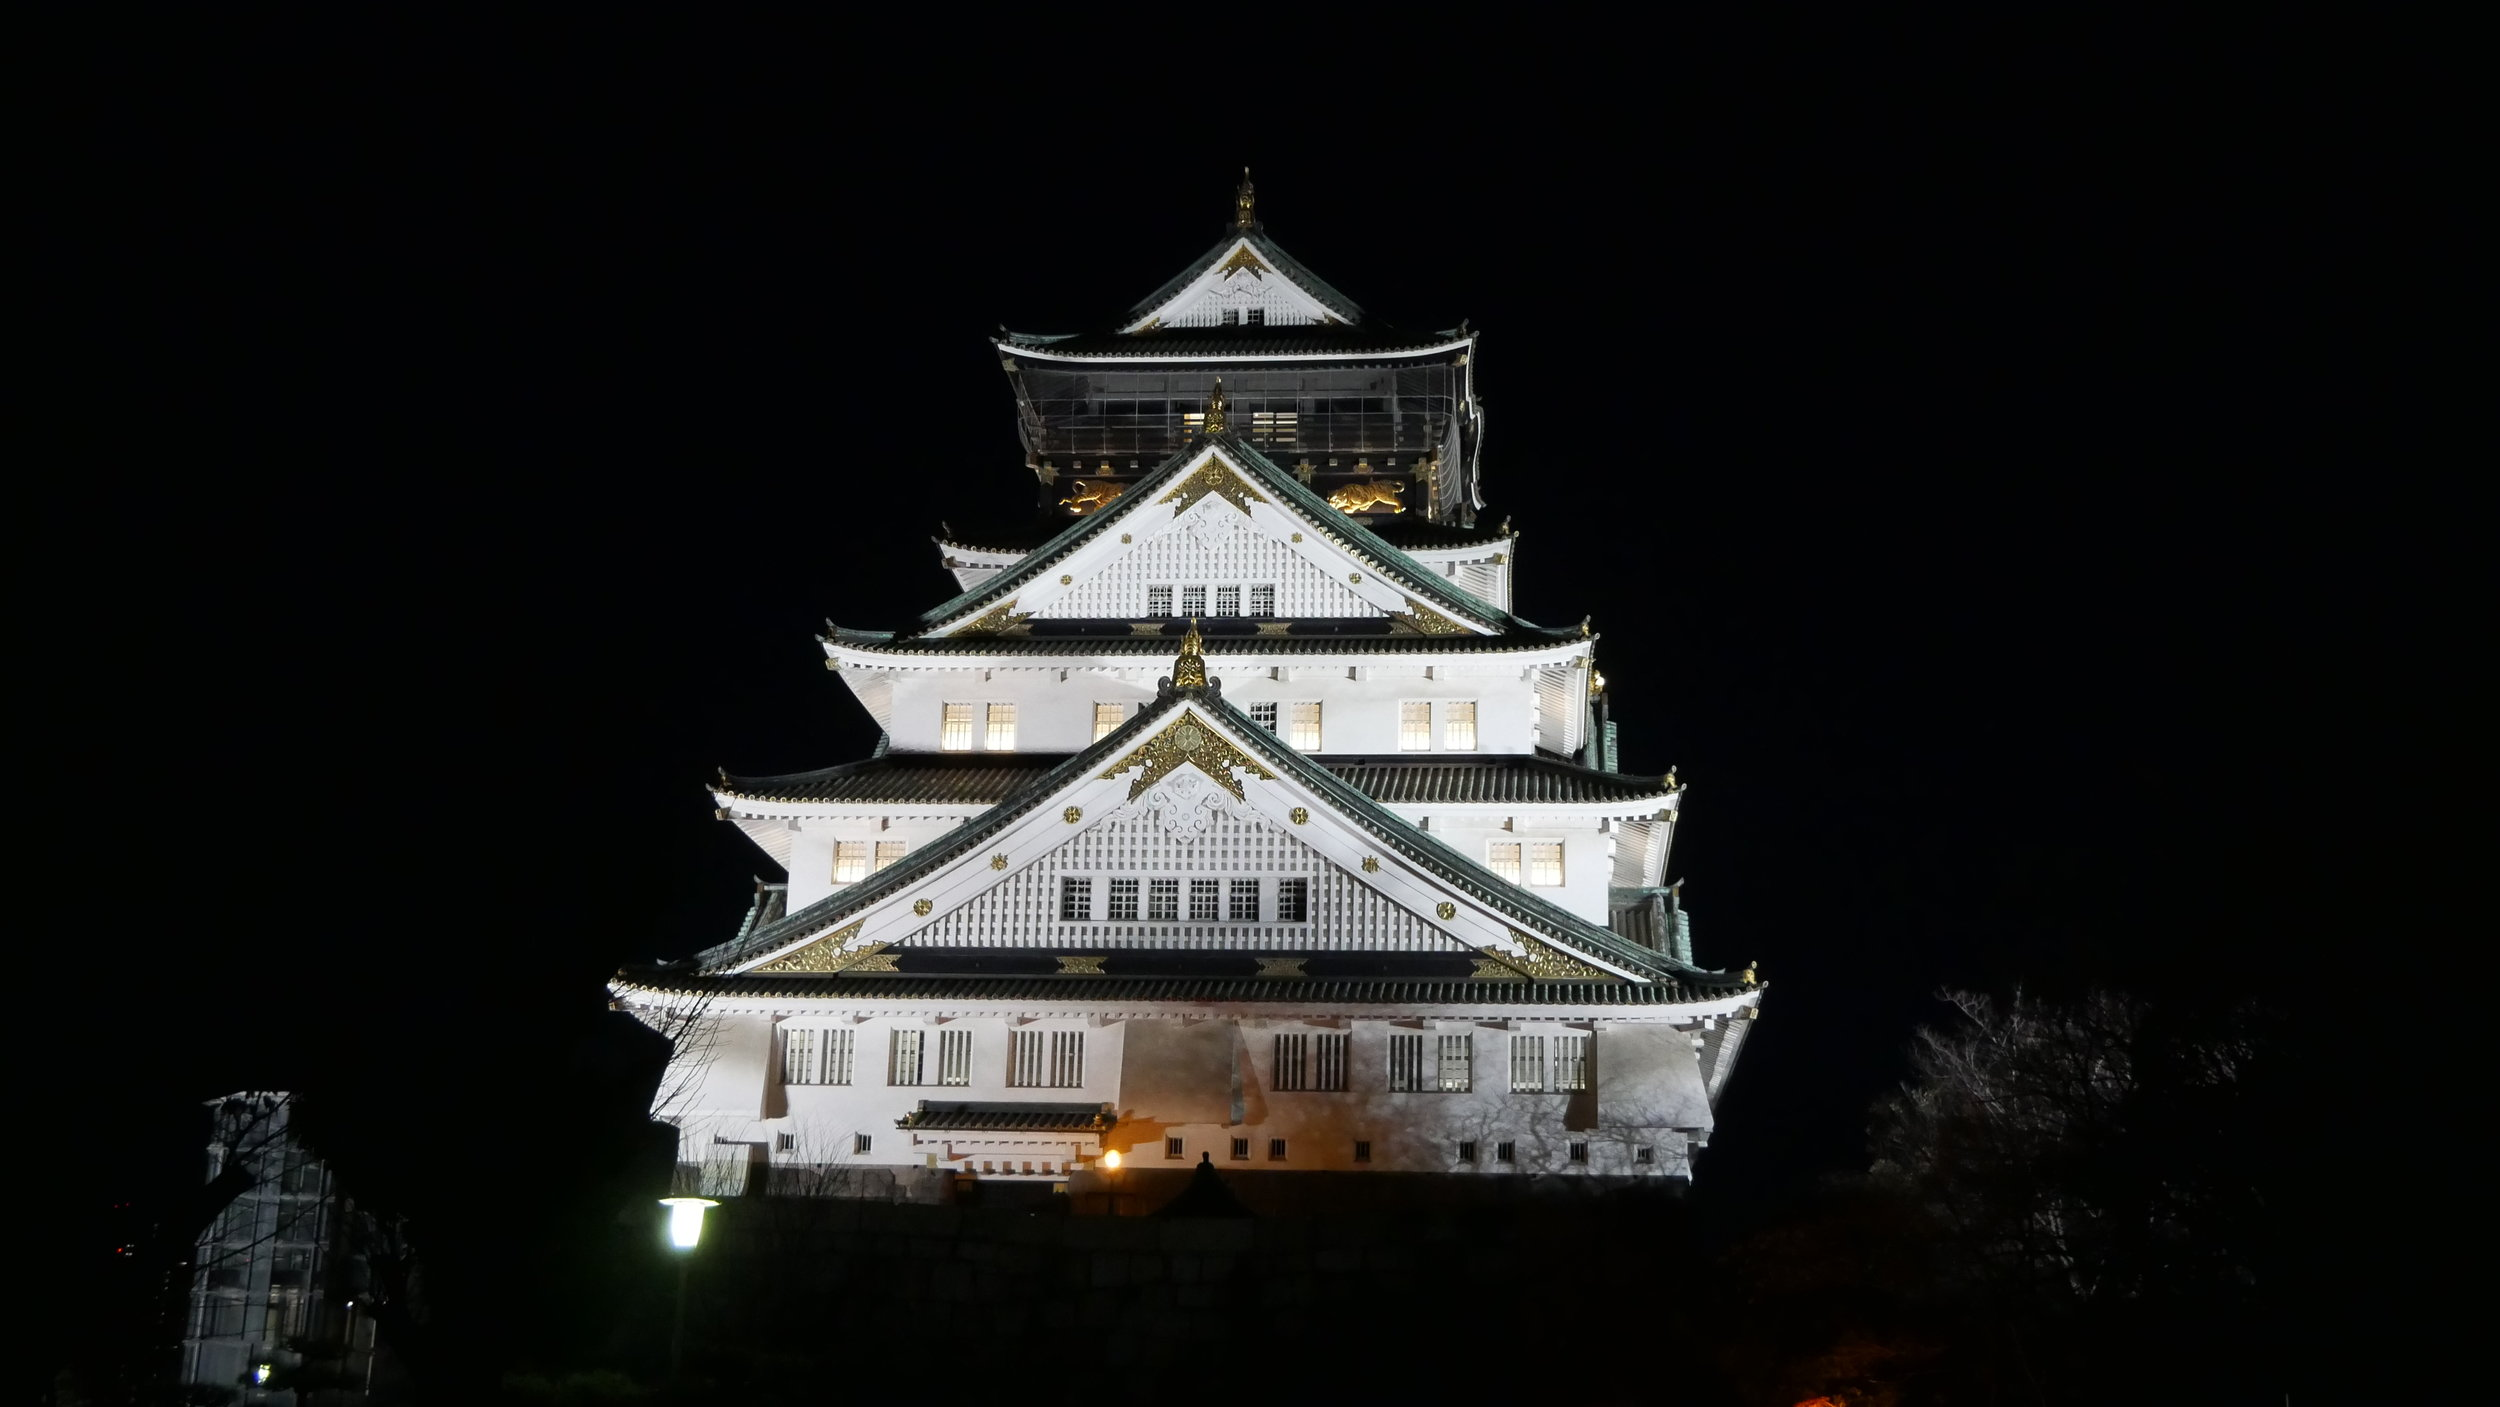 OSAKA CASTLE - How gorgeous is the lit up castle at night? Unfortunately for us, we were unable to go inside of the castle as we got there too late and the touring was closed for the evening. But we did explore in the moats that surrounded the castle as well as the beautiful park just outside.Definitely look up the touring times if this is something that you are interested in seeing. If I were to do it over again, I would've planned to tour inside first and then take these beautiful night pictures afterward.